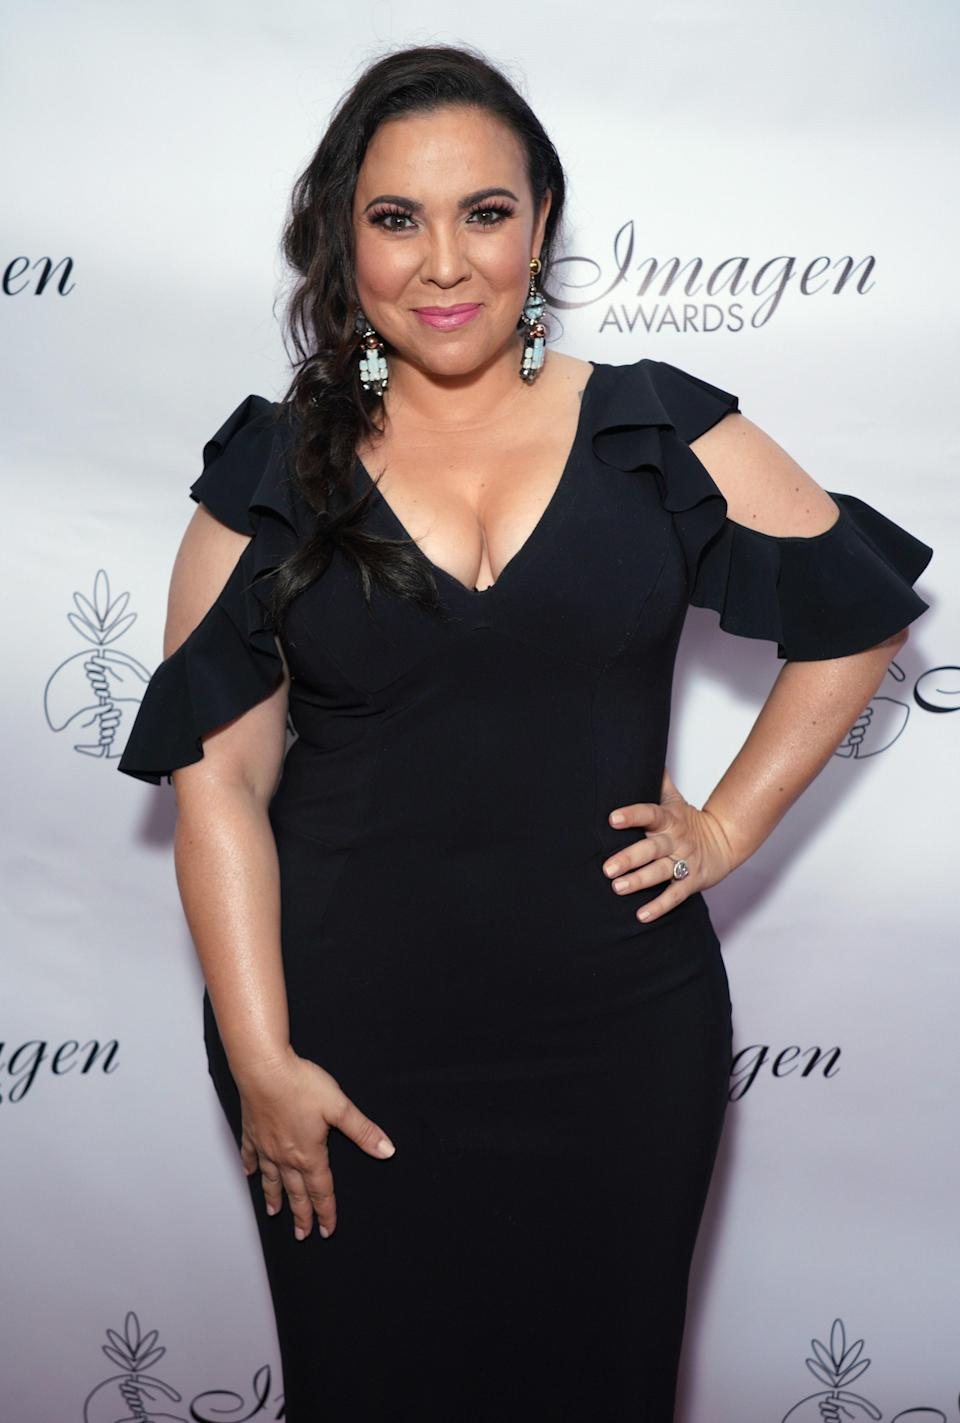 Producer-writer Gloria Calderon-Kellet has helped bring some of your favorite Latinx characters to life on shows like <em>One Day at a Time</em>, <em>Jane the Virgin</em>, and <em>Drunk History.</em> One of the few Latinx showrunners in Hollywood, she fought to find <em>One Day at a Time</em> a new home after it was cancelled on Netflix.